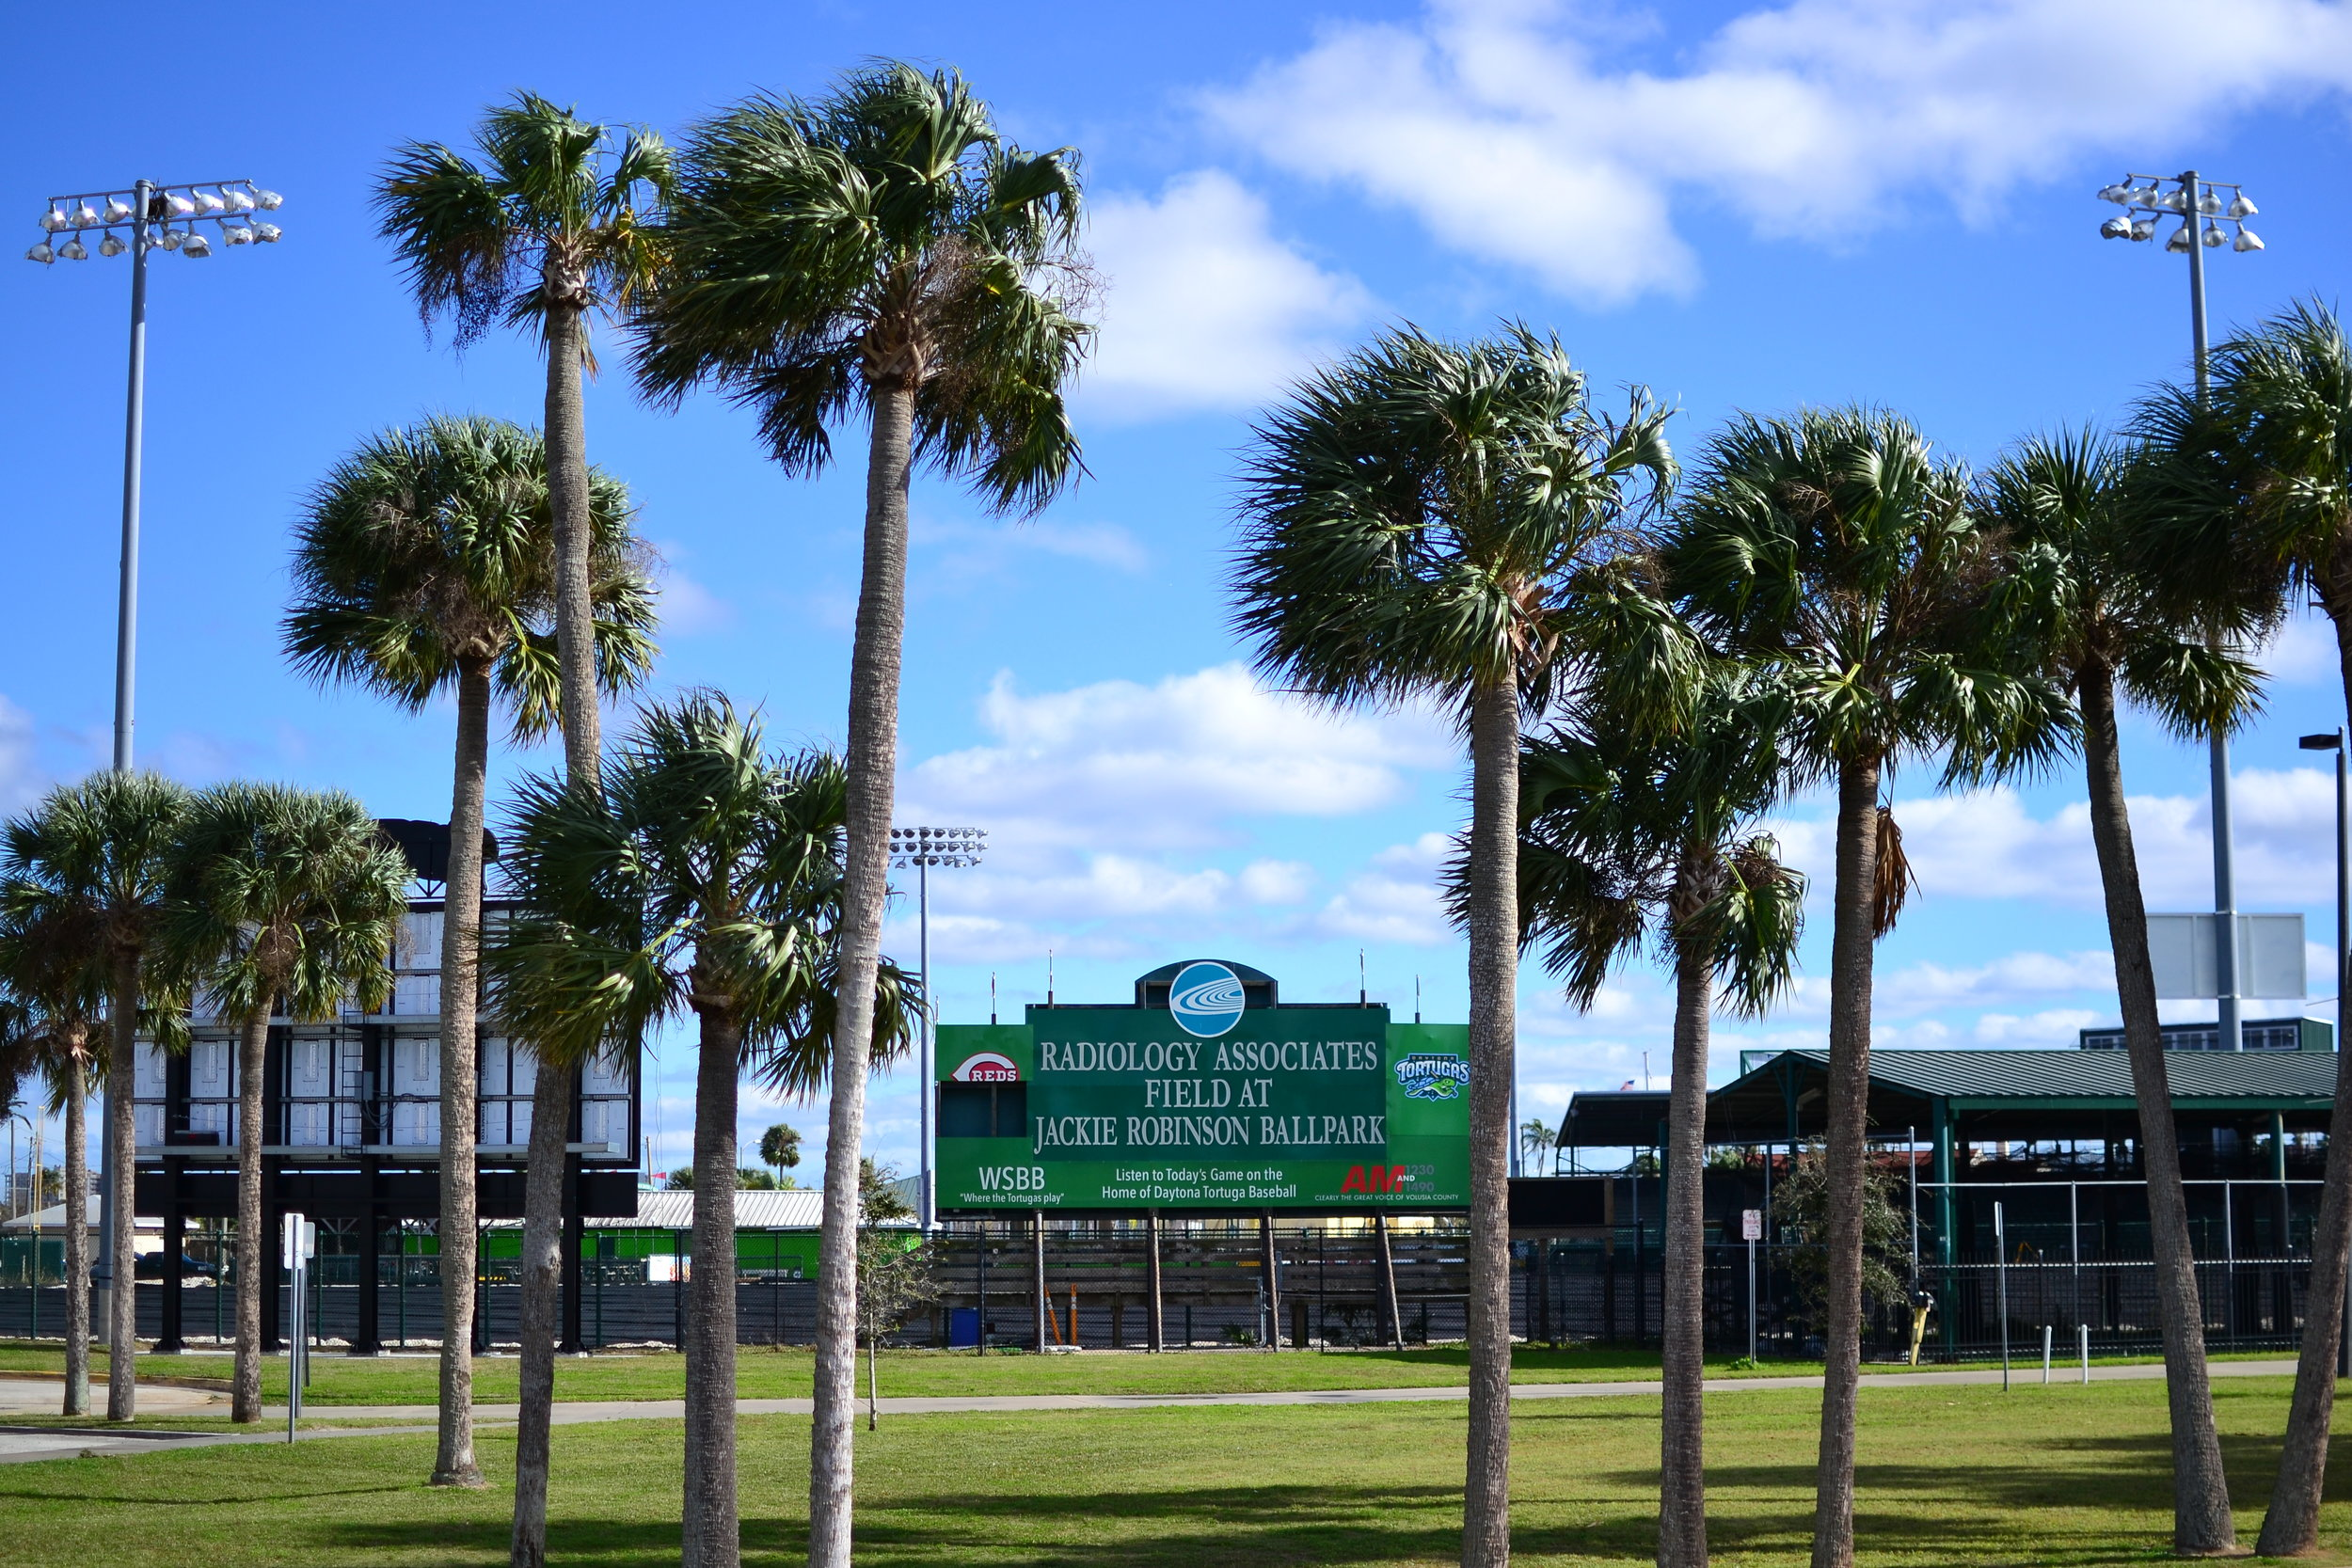 What to do in Daytona Beach: Watch a Daytona Tortugas Baseball Game